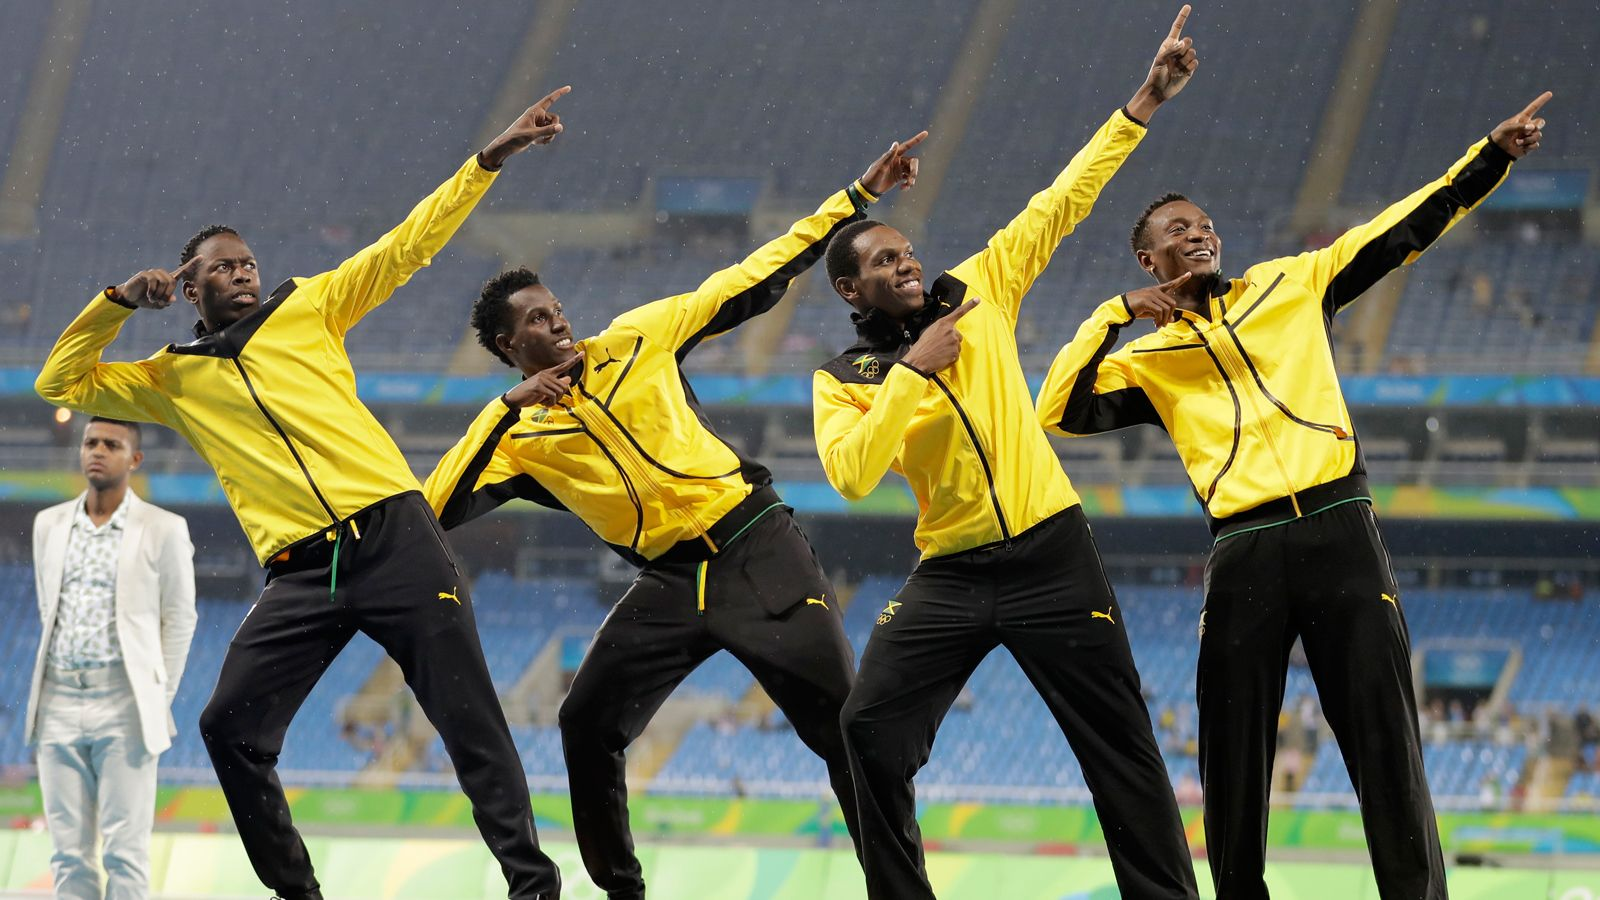 Fitzroy Dunkley wins silver in relay for Jamaica